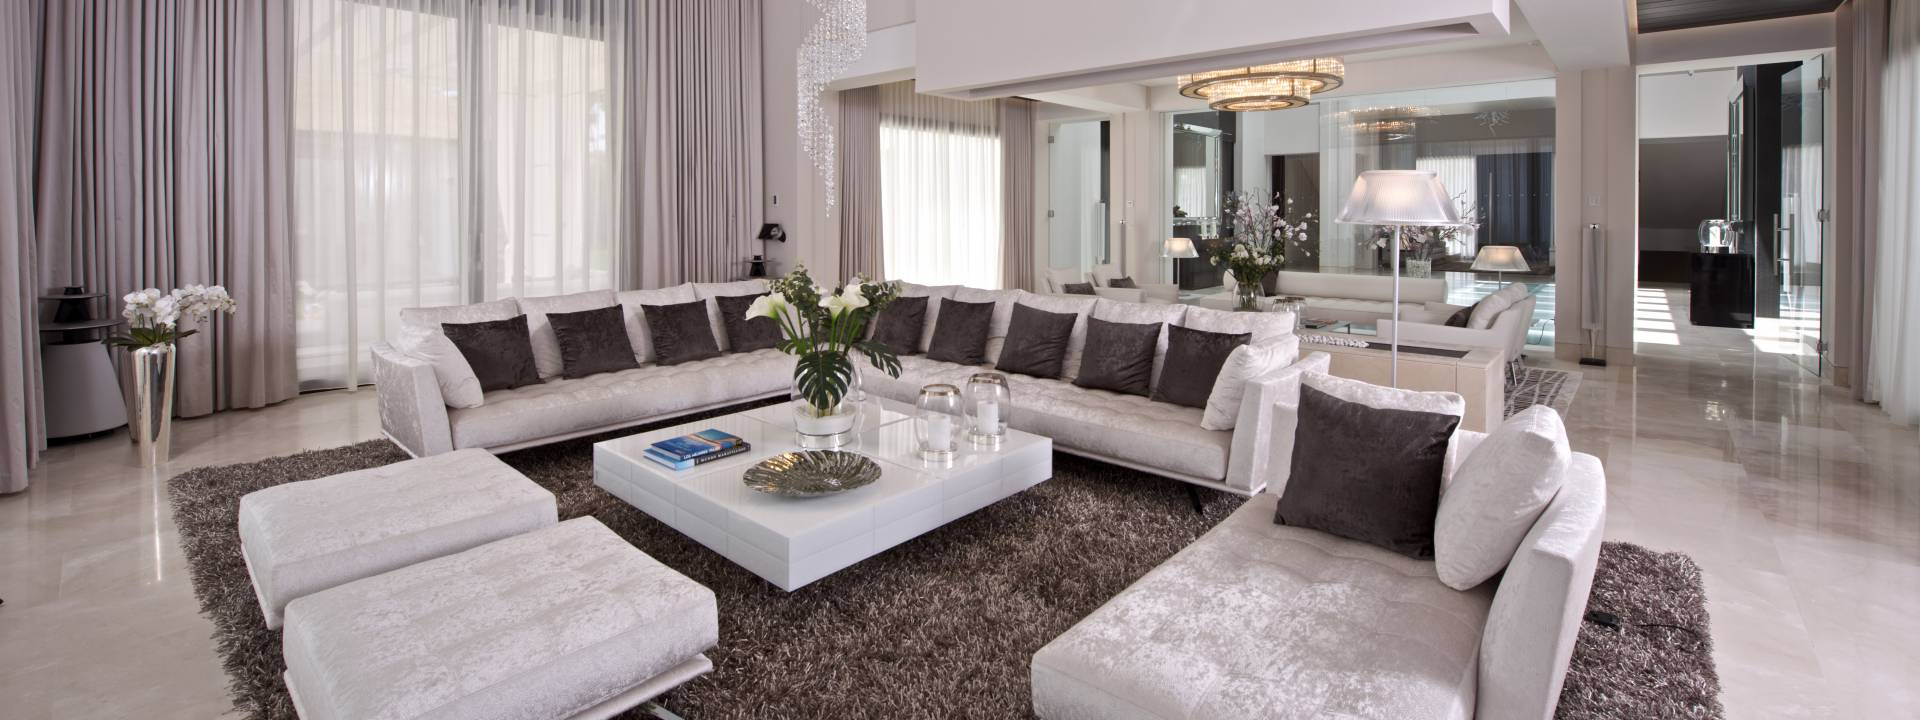 Exclusive Holiday Villa. Modern living room by Yvette Taylor London